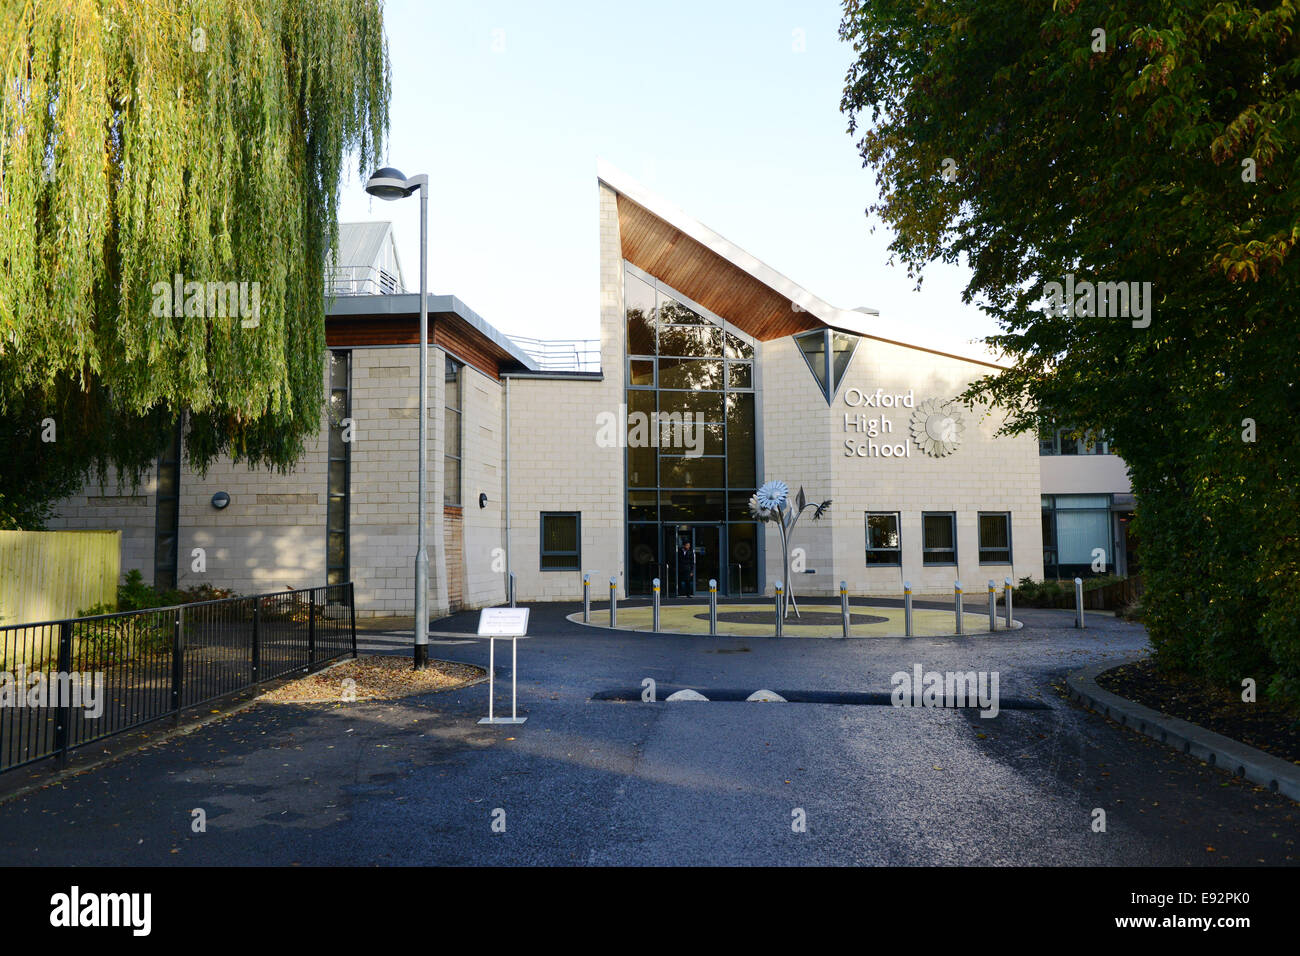 Oxford High School for Girls, Belbroughton Rd GV Pic Richard Cave 17.10.14 - Stock Image